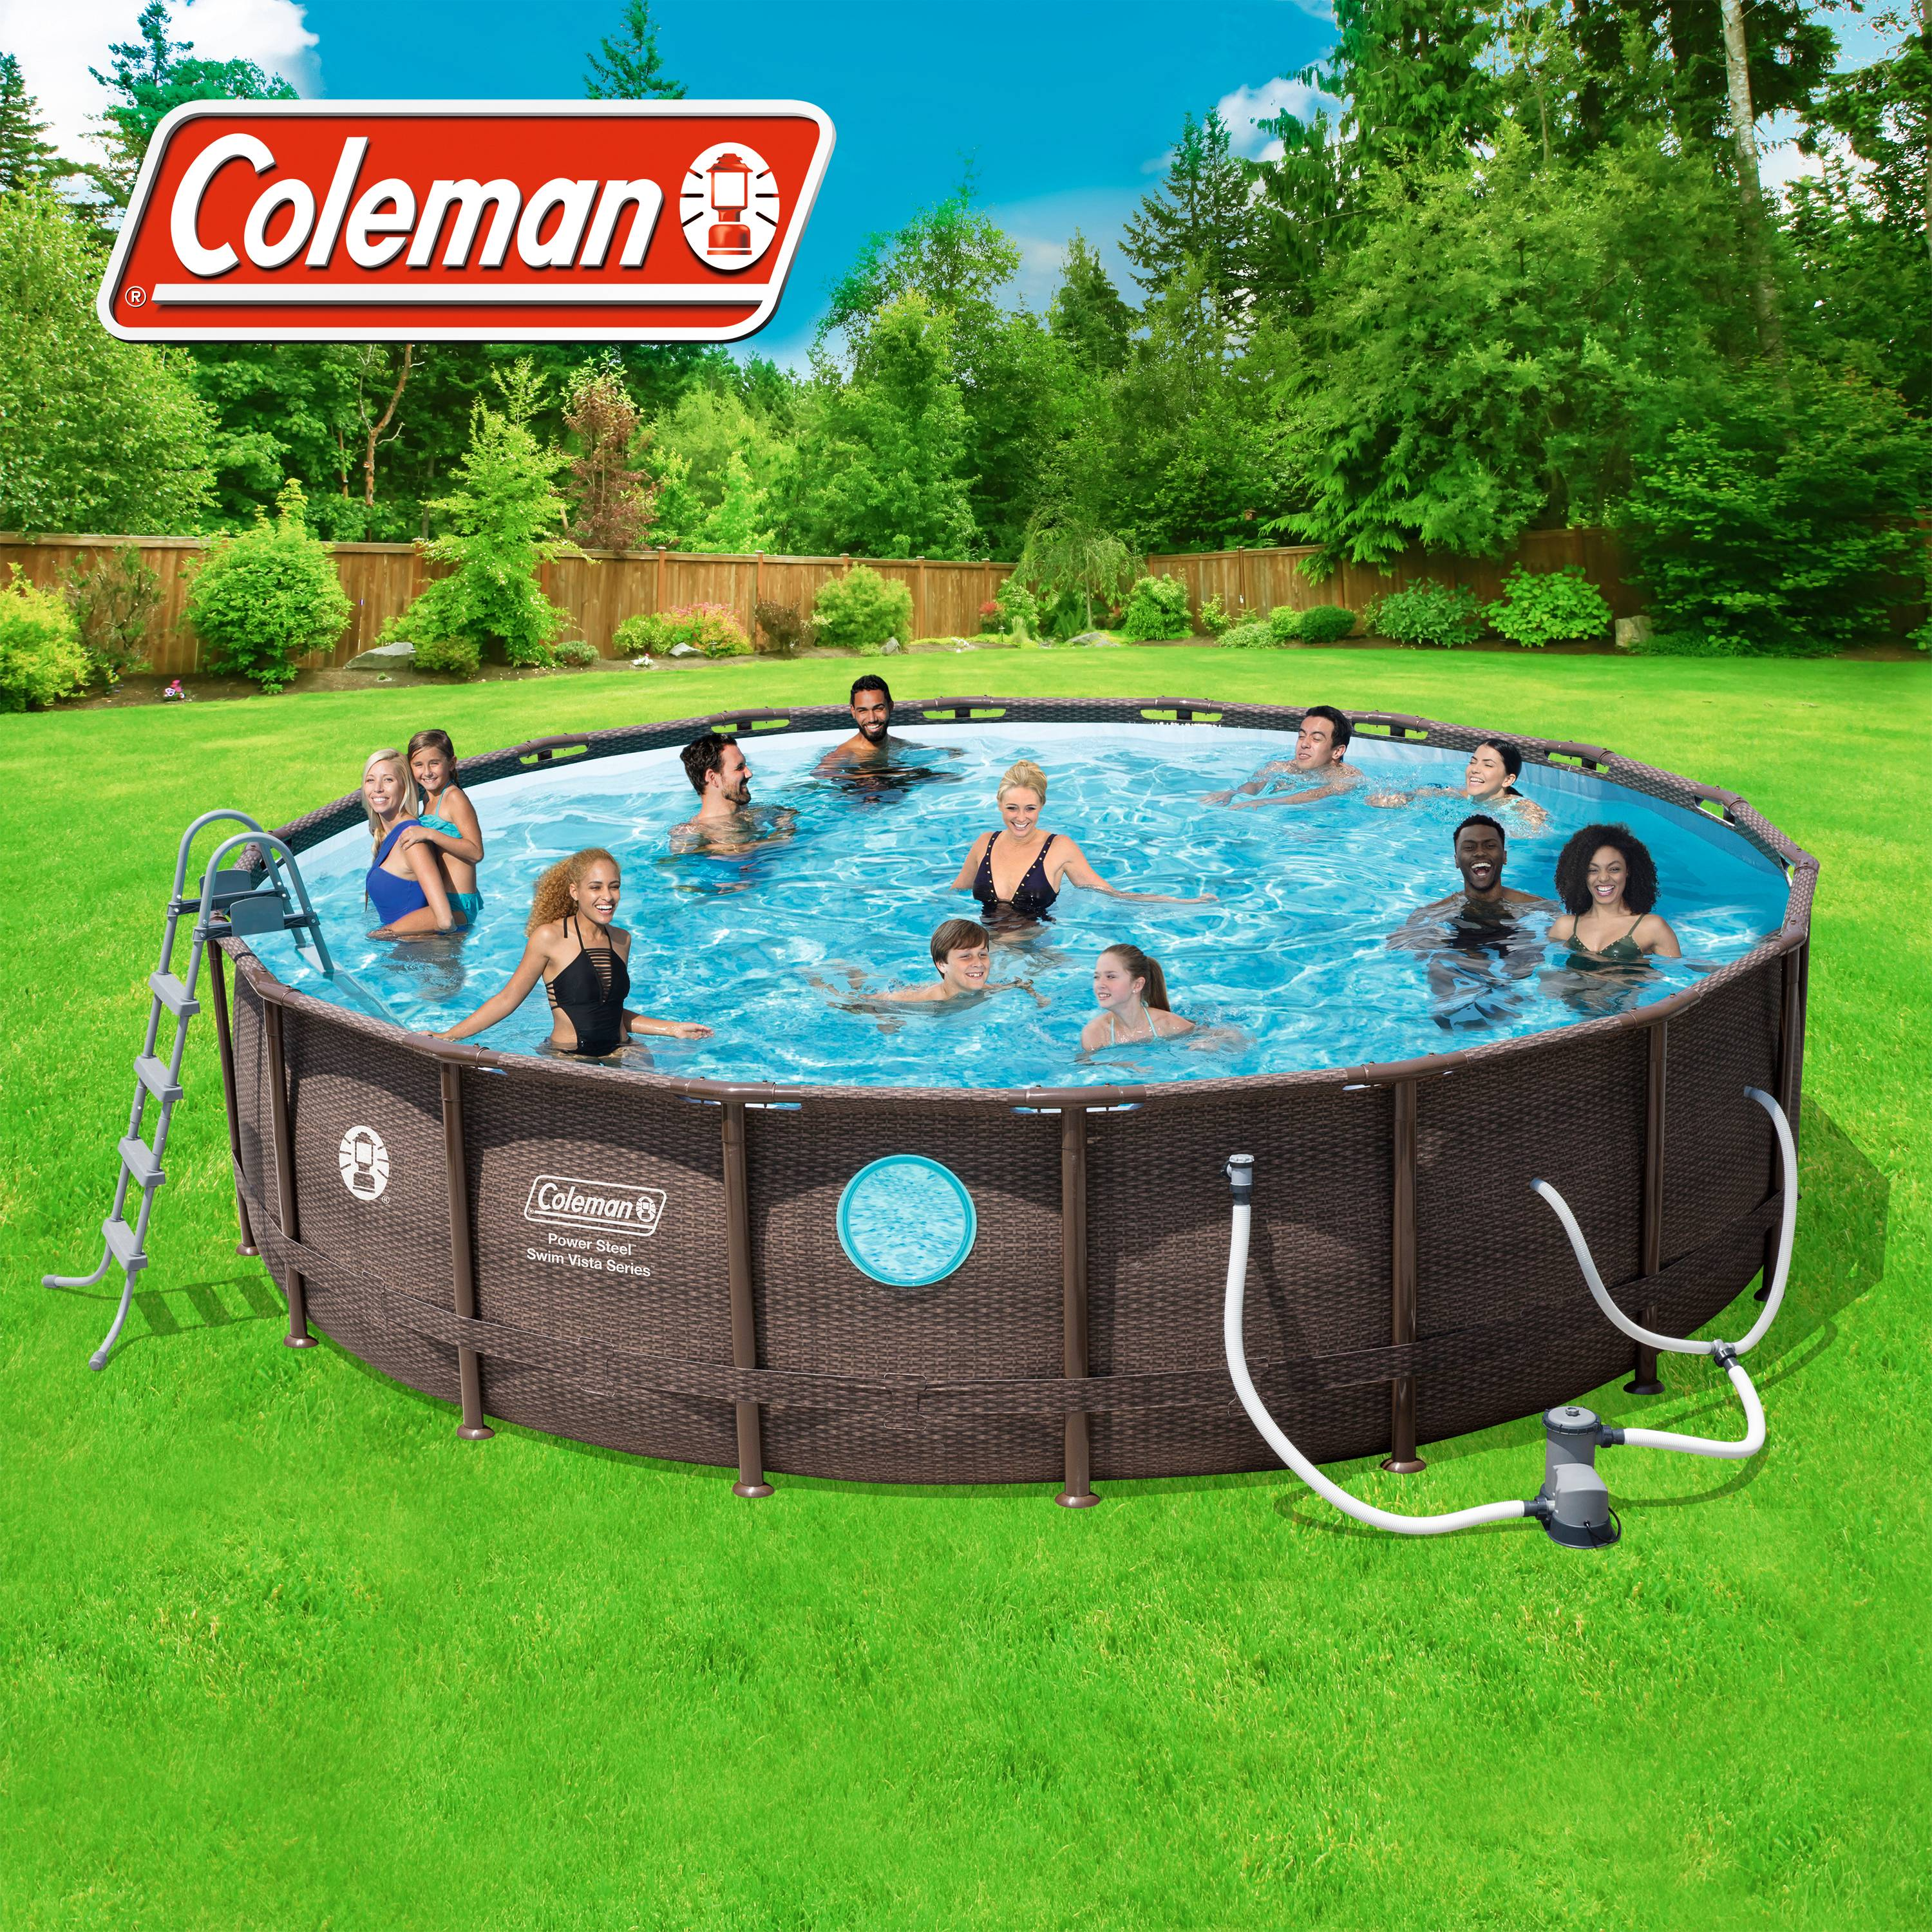 How Do I Drain My Coleman Above Ground Pool Best Drain